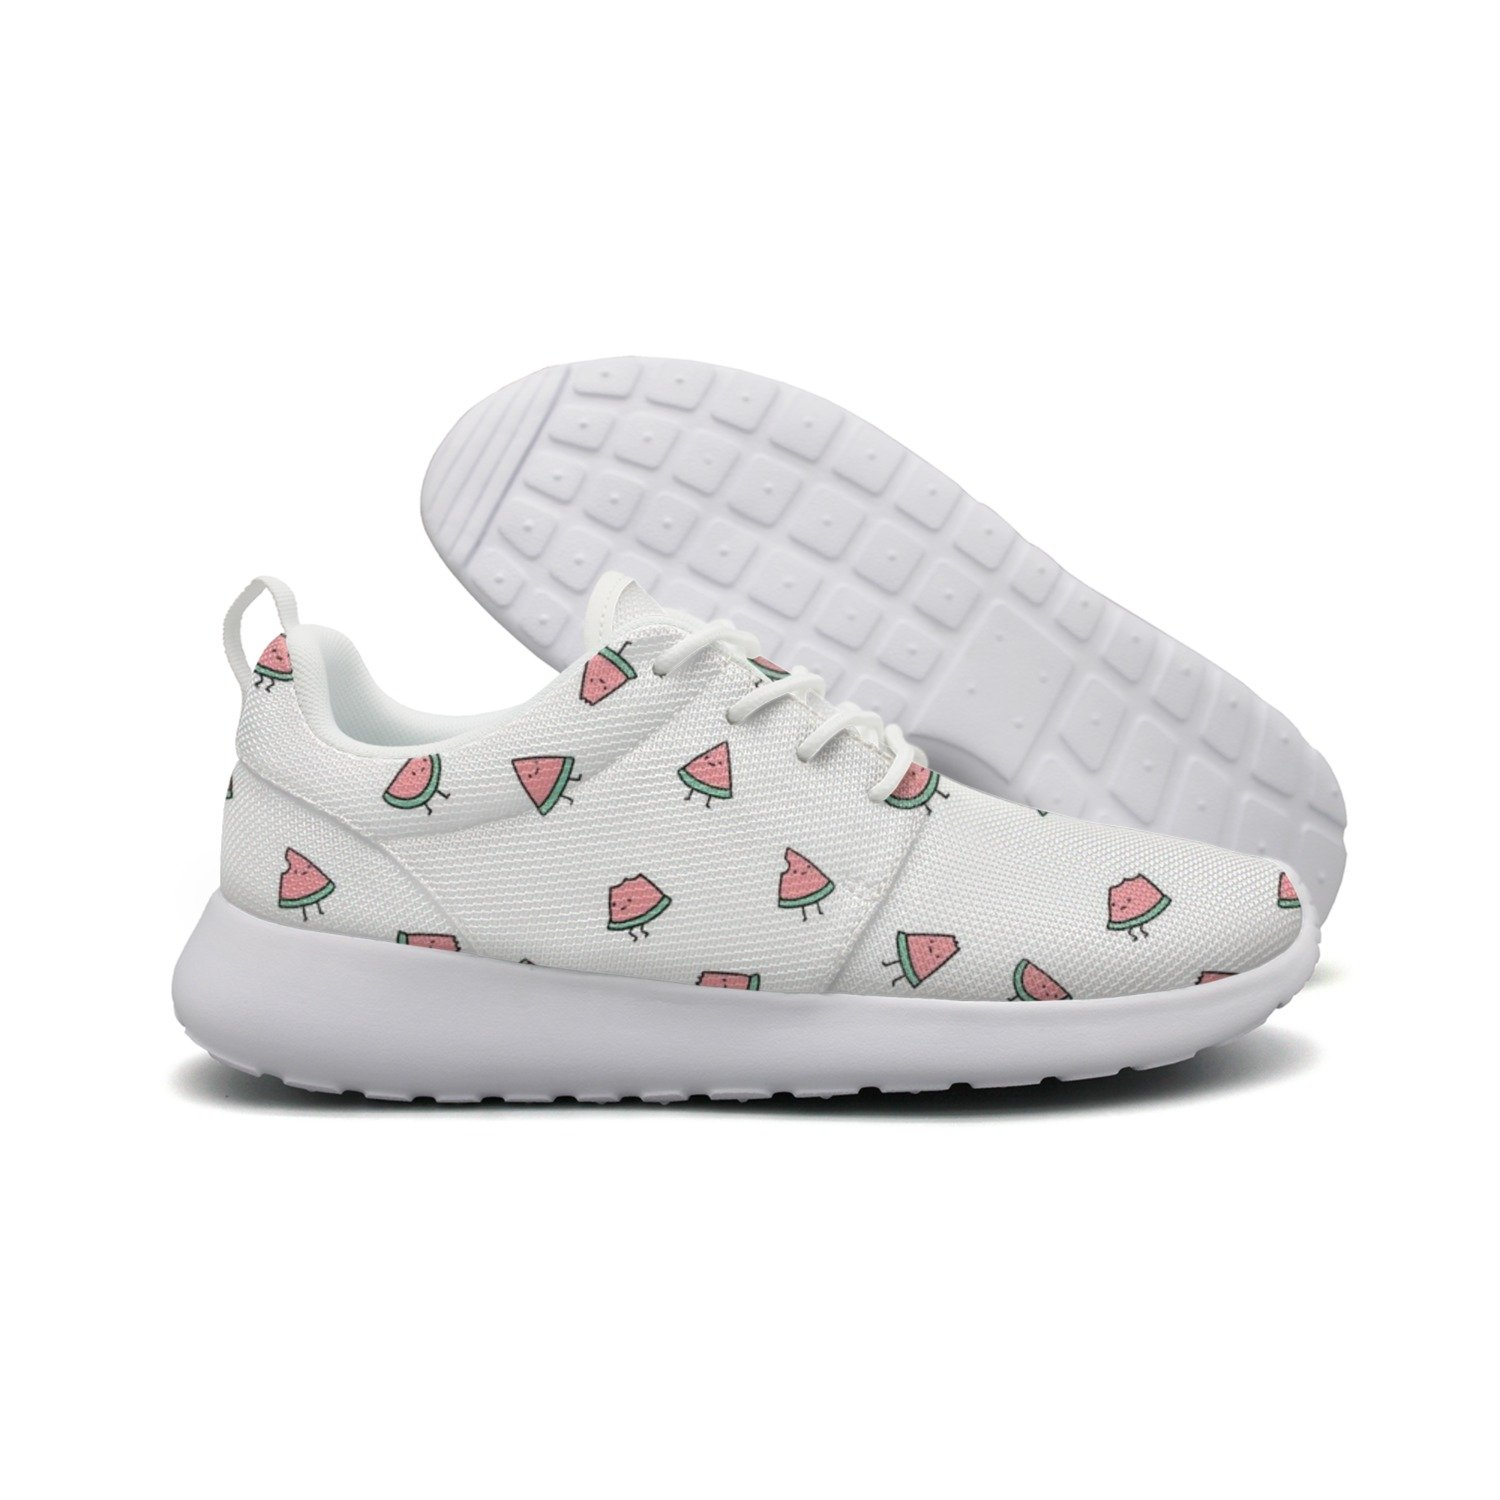 Men's I Carried A Watermelon Running Shoes Fashion Sneakers Walking Shoes